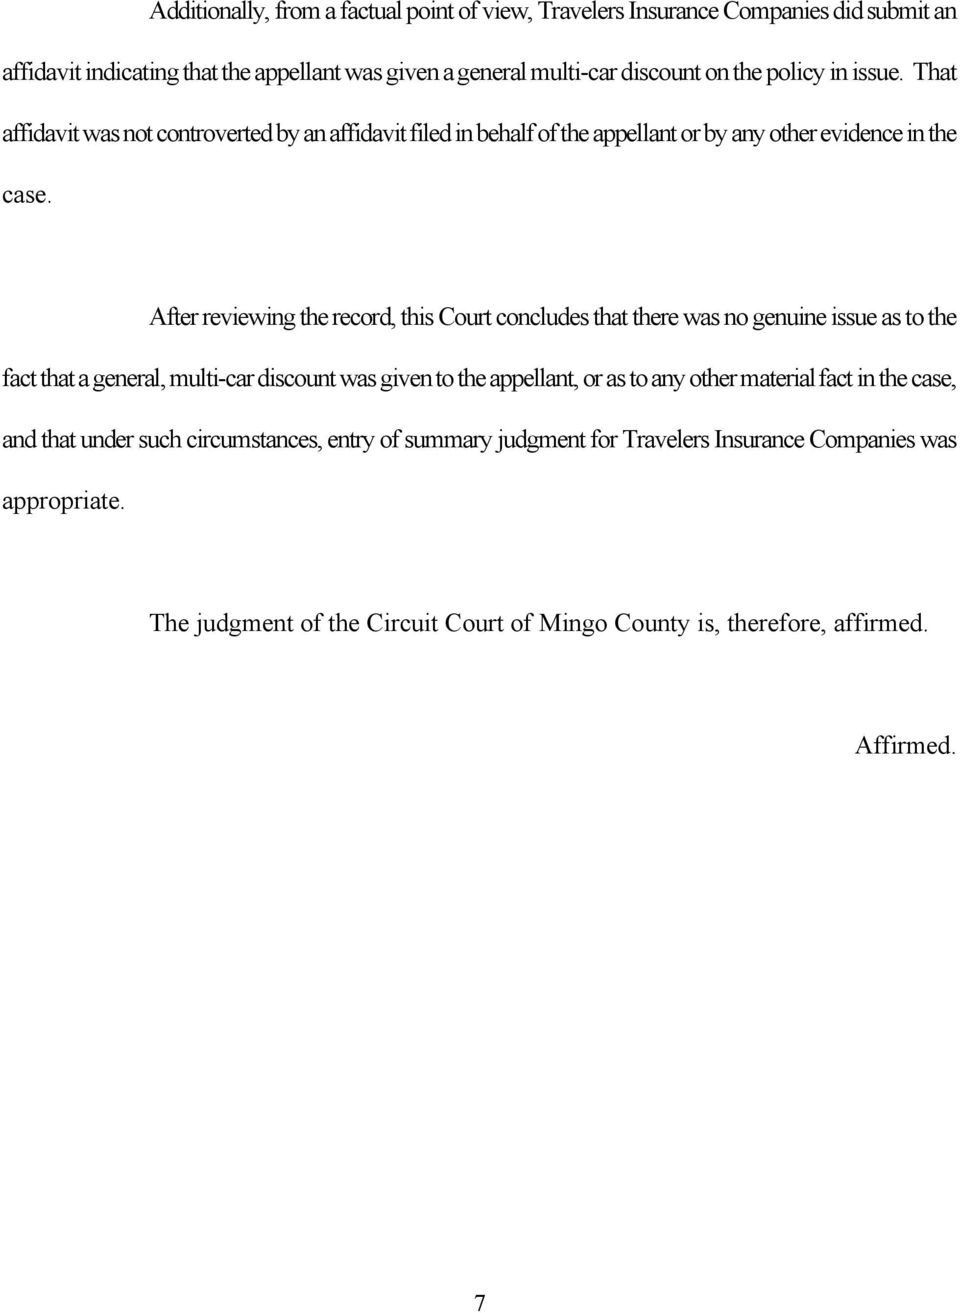 After reviewing the record, this Court concludes that there was no genuine issue as to the fact that a general, multi-car discount was given to the appellant, or as to any other